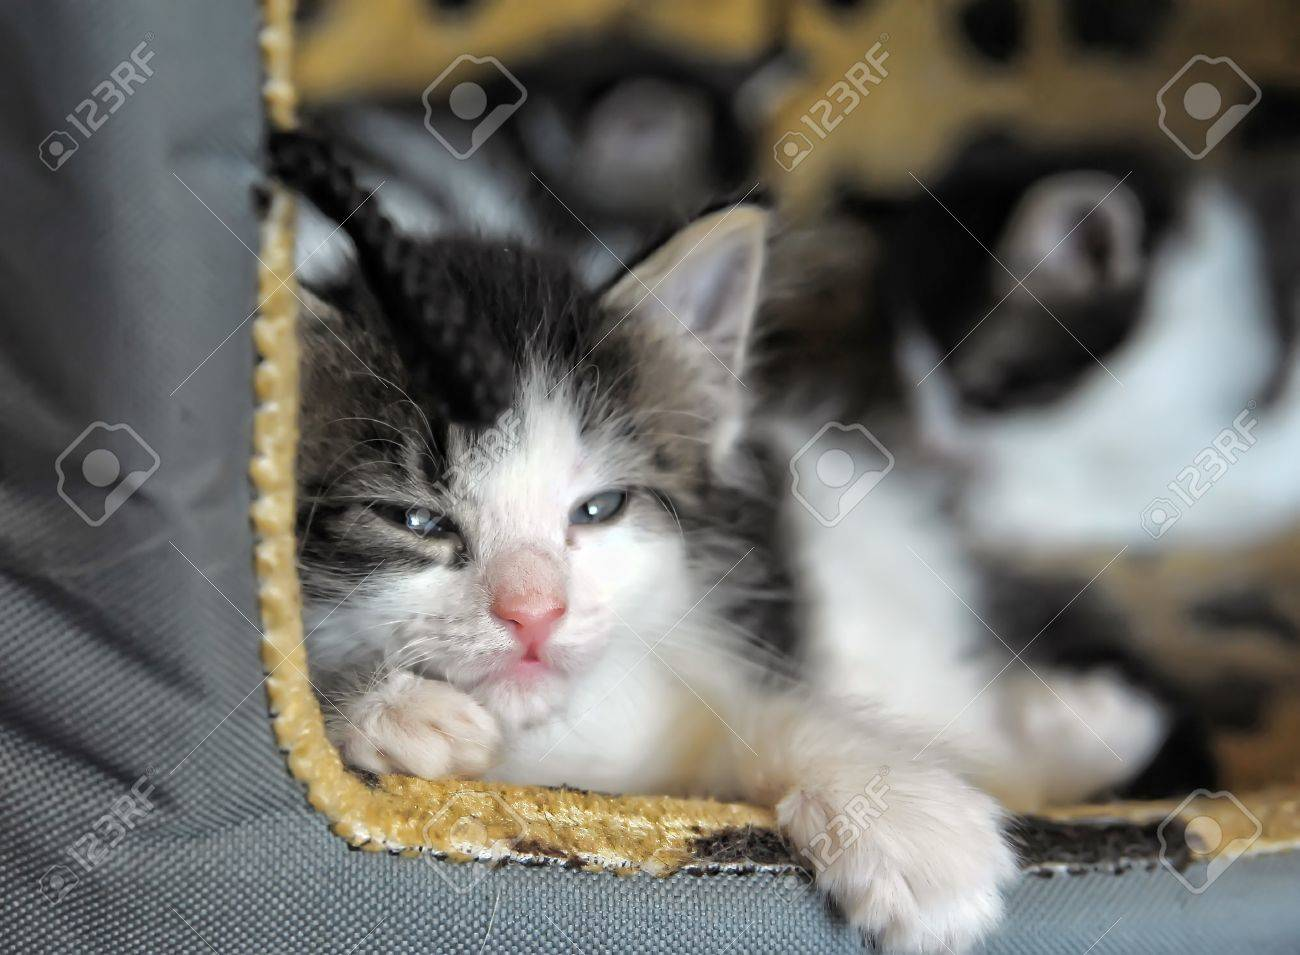 Sweet sleeping kitten Stock Photo - 13734566